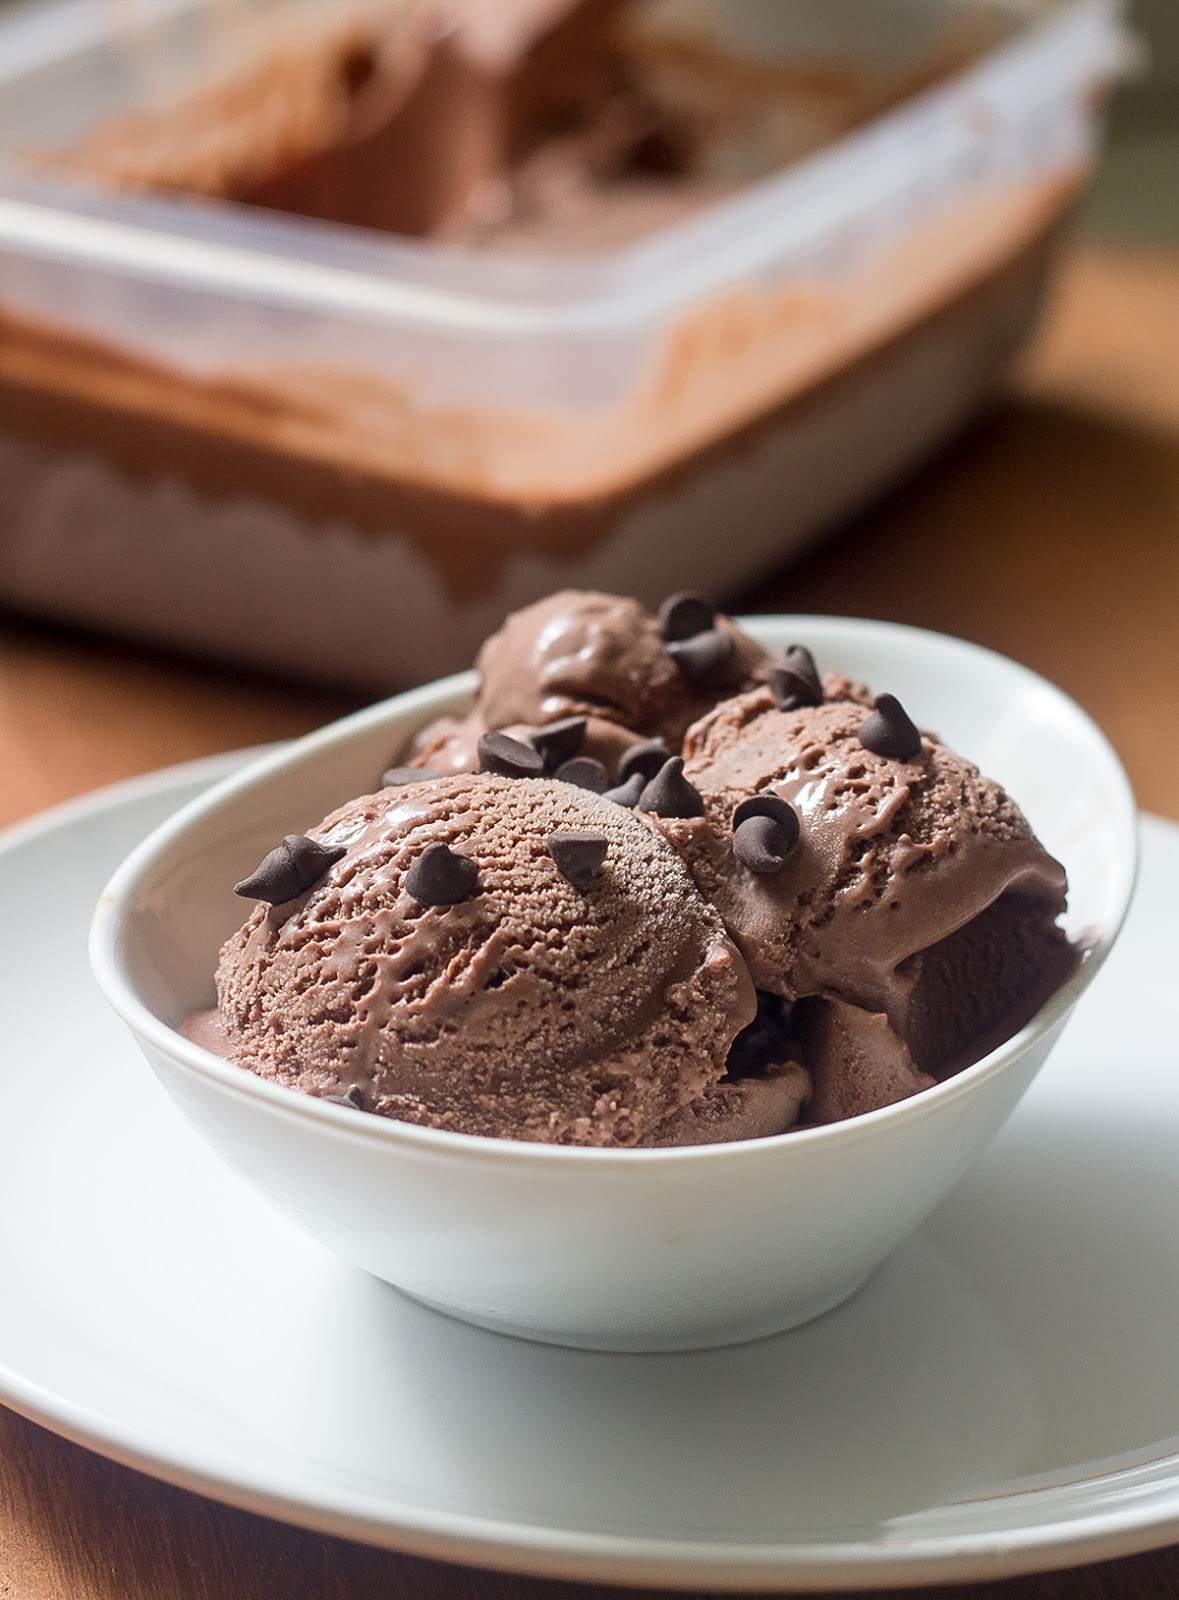 ... cream ice cream bars smooth and mellow chocolate ice cream recipes